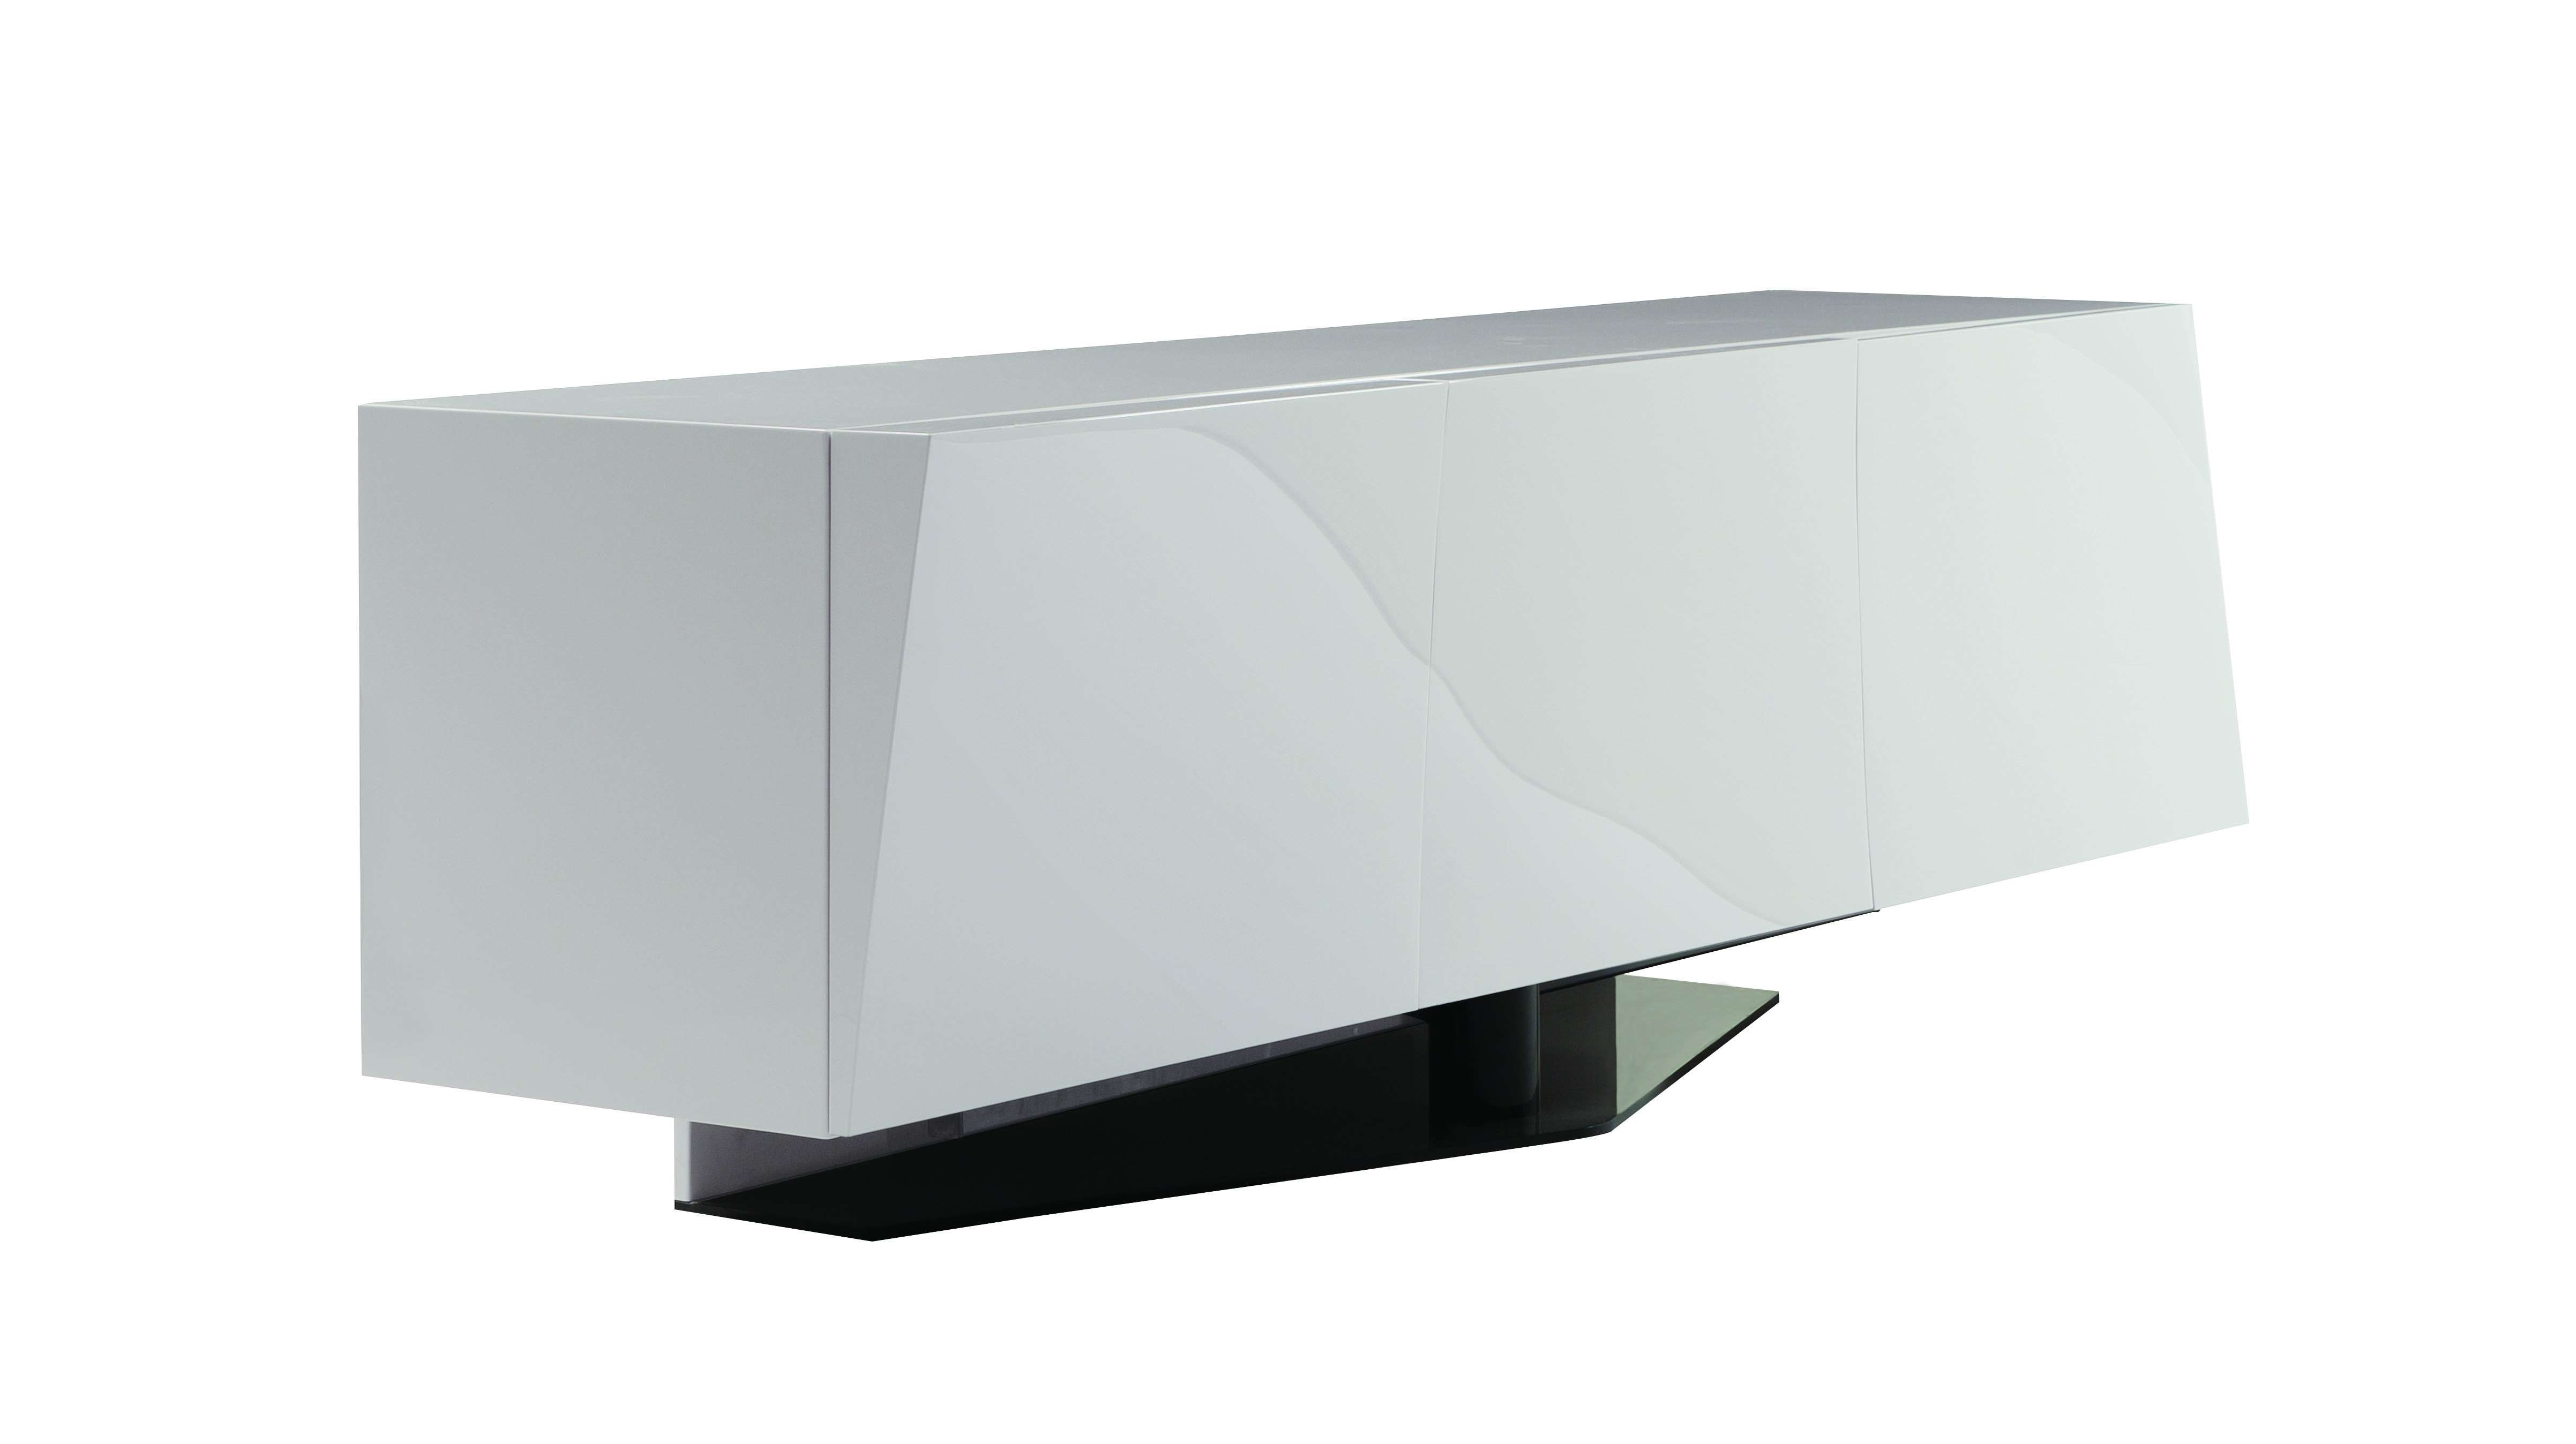 Rosace | Sideboard Les Contemporains Collectionroche Bobois Throughout Roche Bobois Sideboards (View 15 of 20)